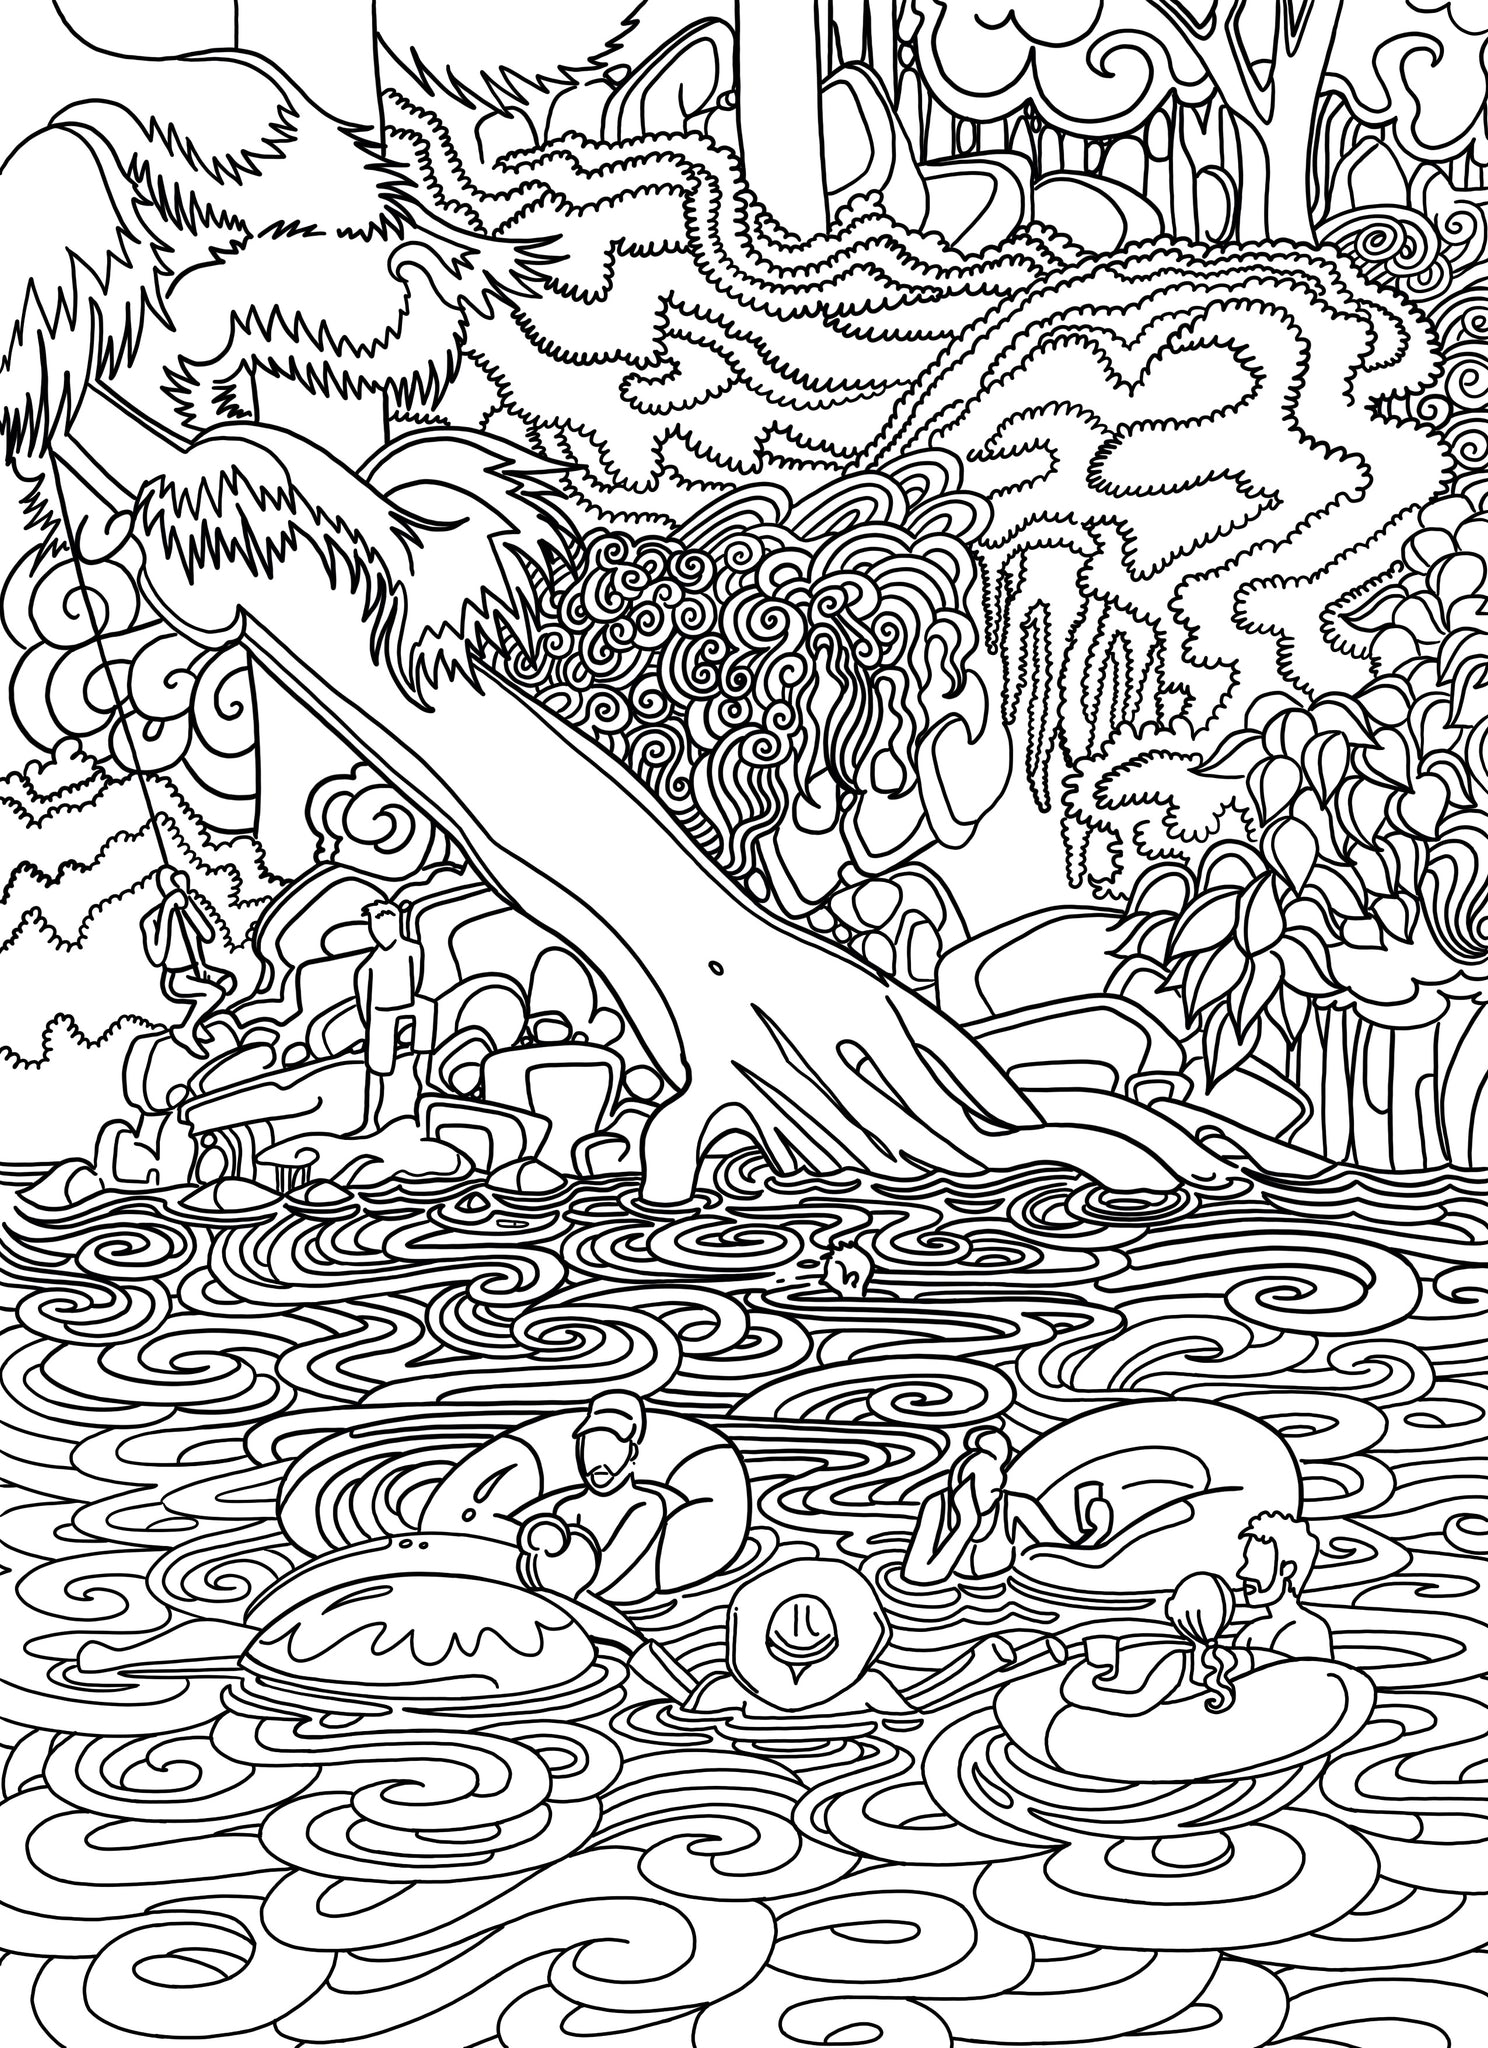 Krause Springs Coloring Page - Borrelli Illustrations